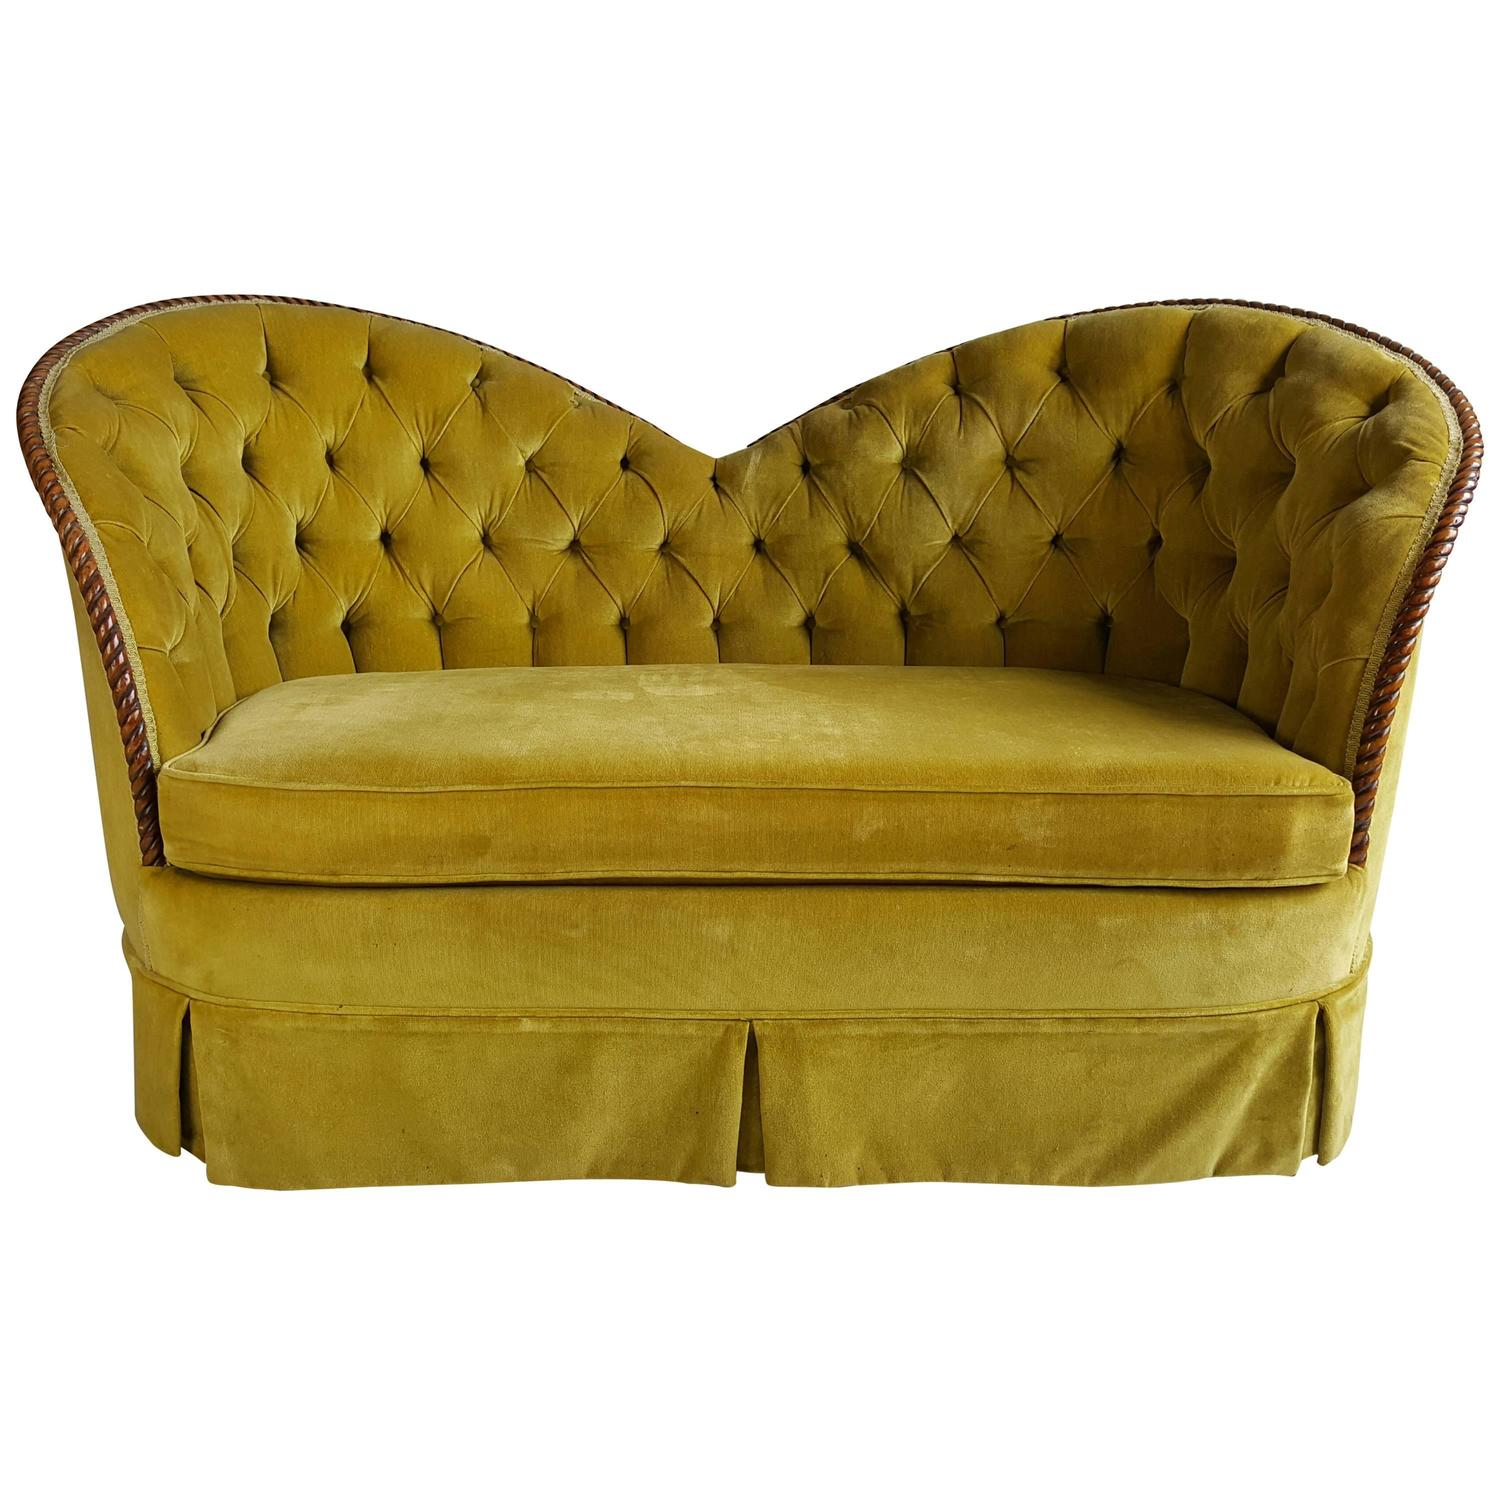 Love Sofa Dimensions: Stunning Regency Heart Shape Settee, Sofa Or Loveseat